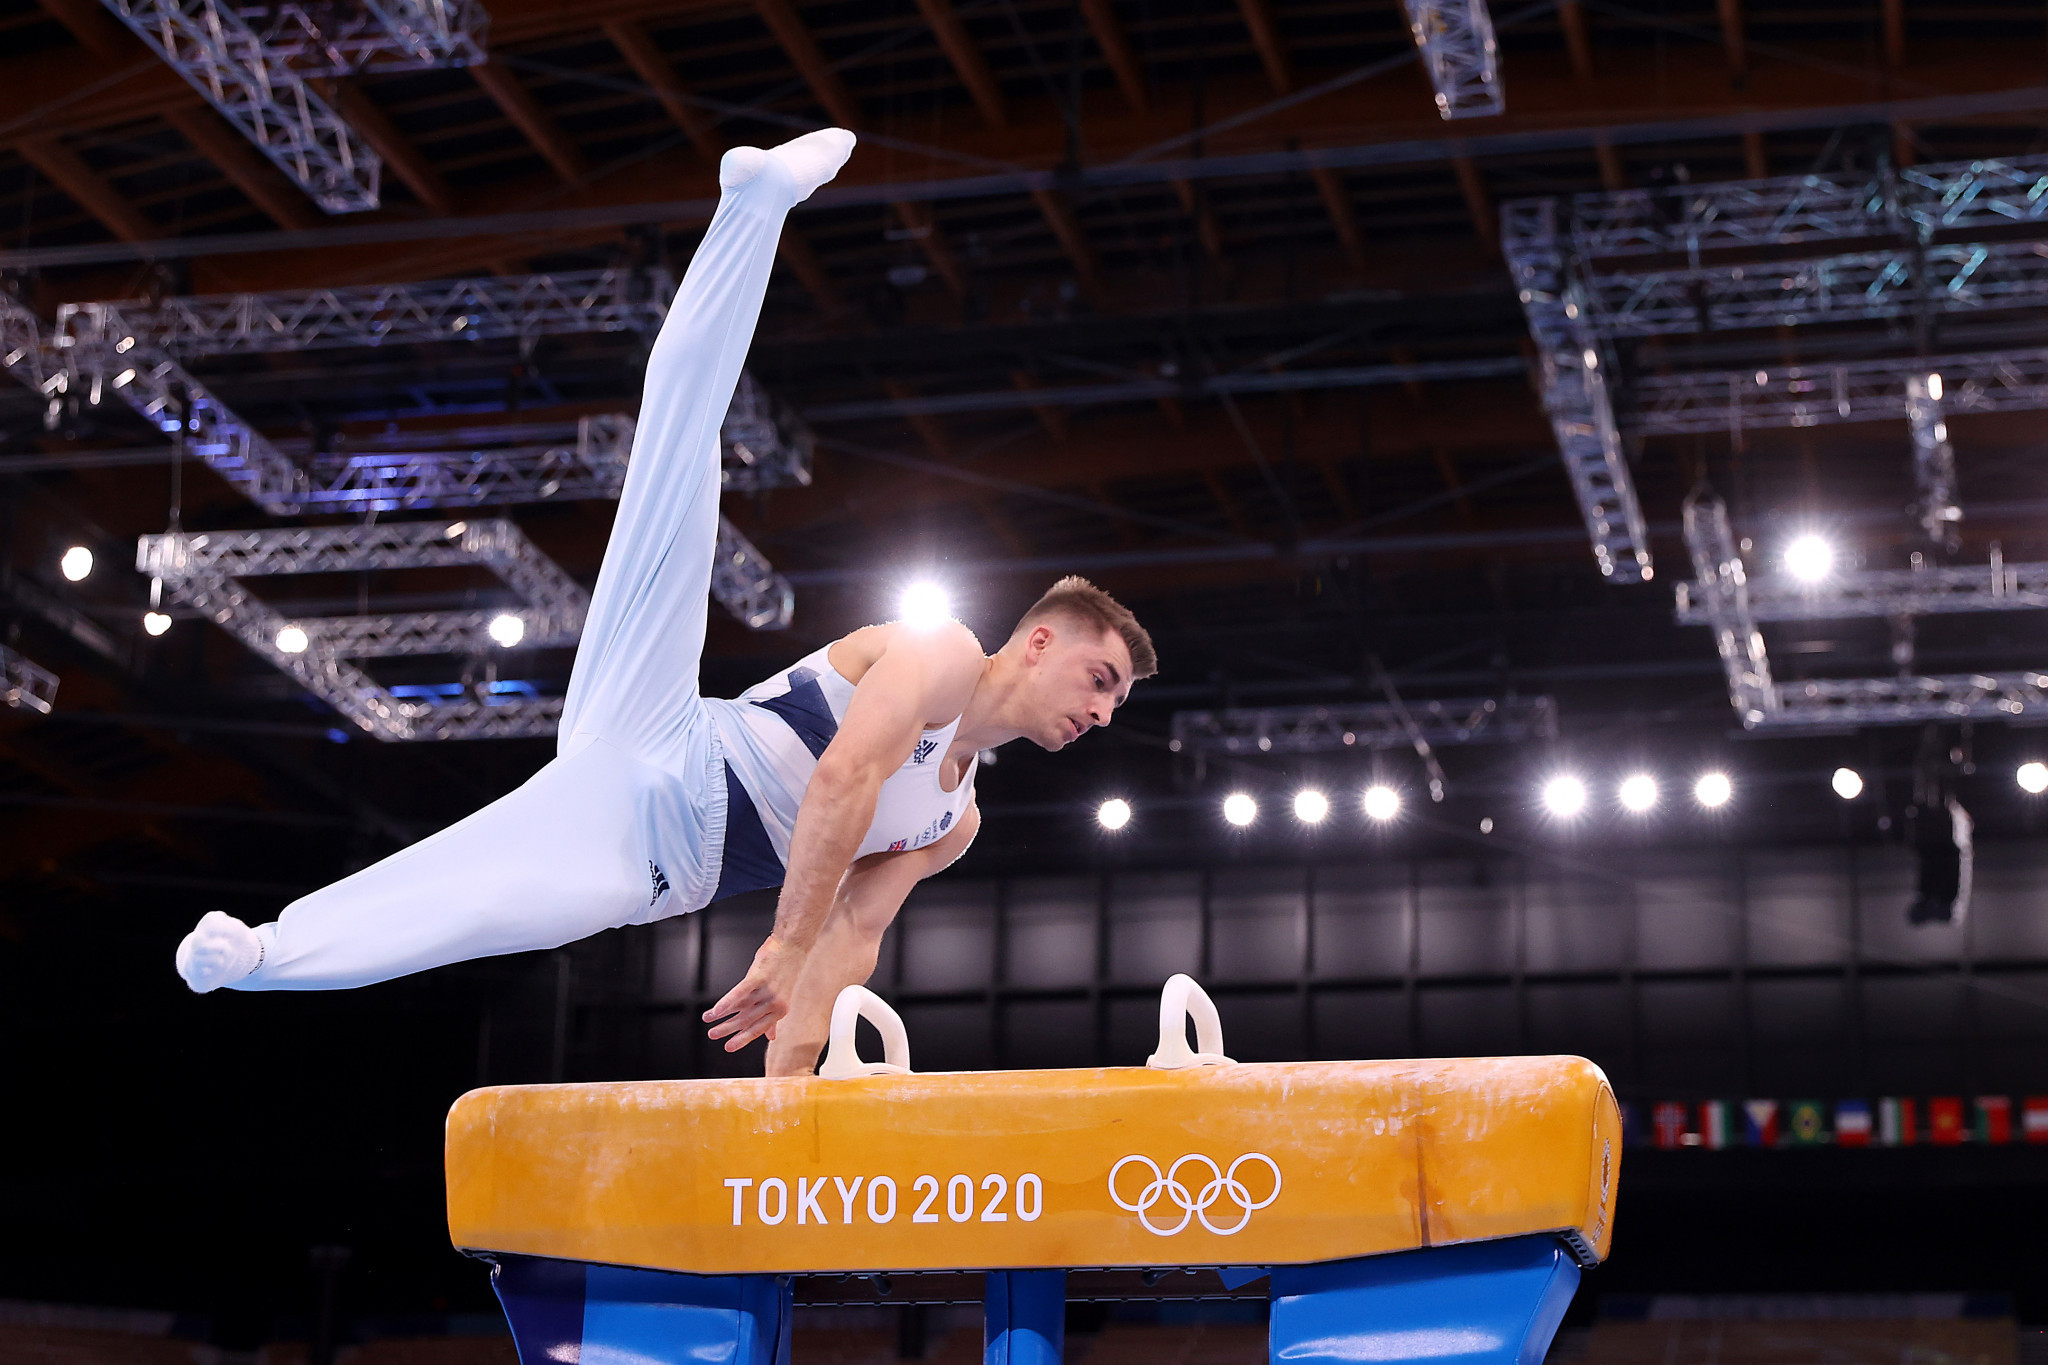 Britain's Max Whitlock became the first athlete in 41 years to retain the men's Olympic pommel horse title at Tokyo 2020 ©Getty Images